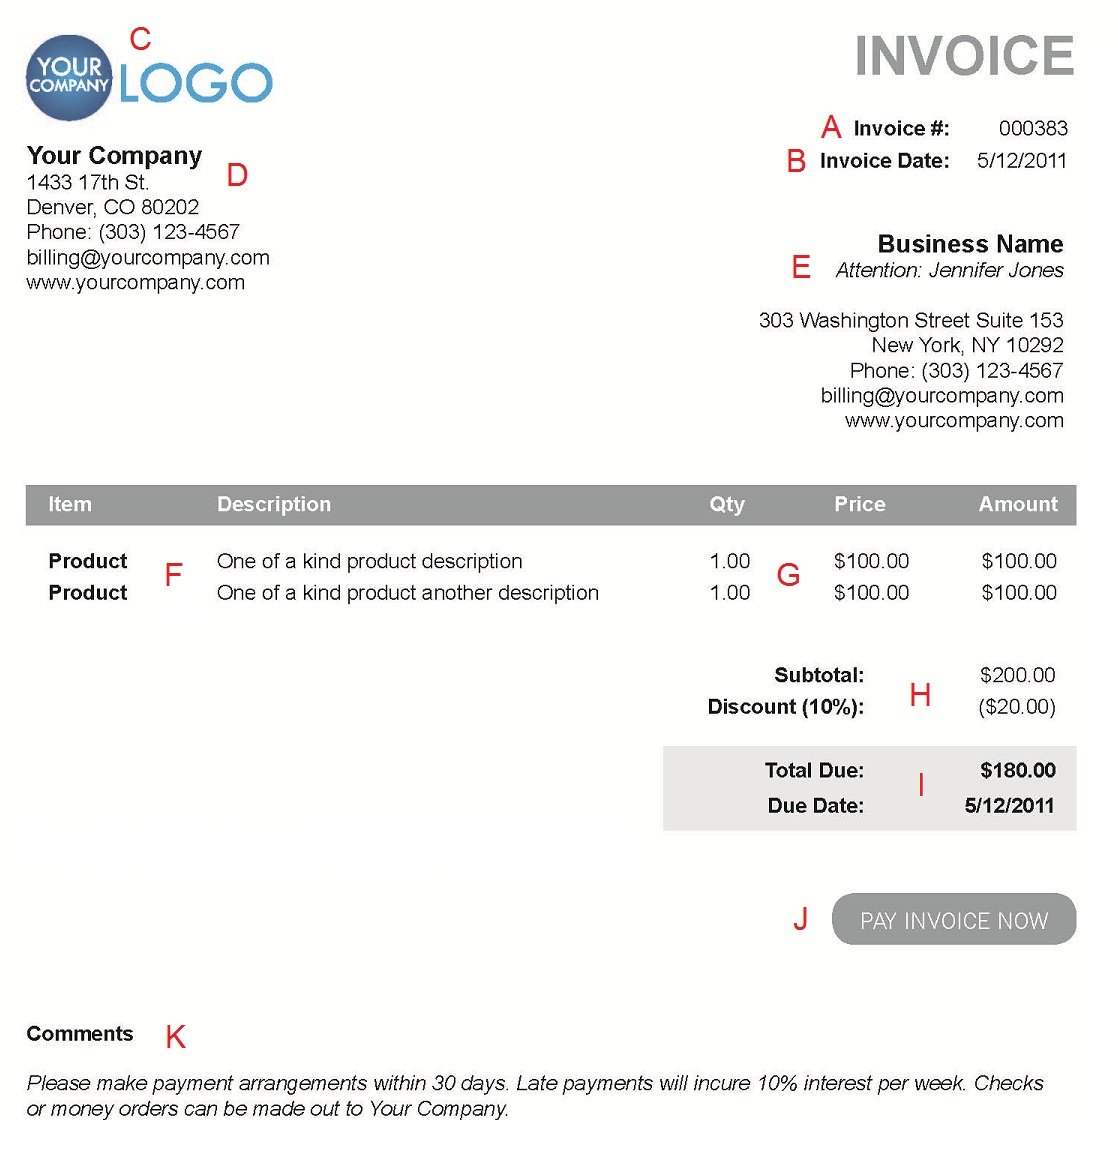 Occupyhistoryus  Outstanding The  Different Sections Of An Electronic Payment Invoice With Exquisite A  With Lovely Cloud Invoice Also Invoice On Line In Addition Invoice Template For Google Drive And Software Invoice As Well As Dodge Ram Invoice Price Additionally Track Invoice From Paysimplecom With Occupyhistoryus  Exquisite The  Different Sections Of An Electronic Payment Invoice With Lovely A  And Outstanding Cloud Invoice Also Invoice On Line In Addition Invoice Template For Google Drive From Paysimplecom